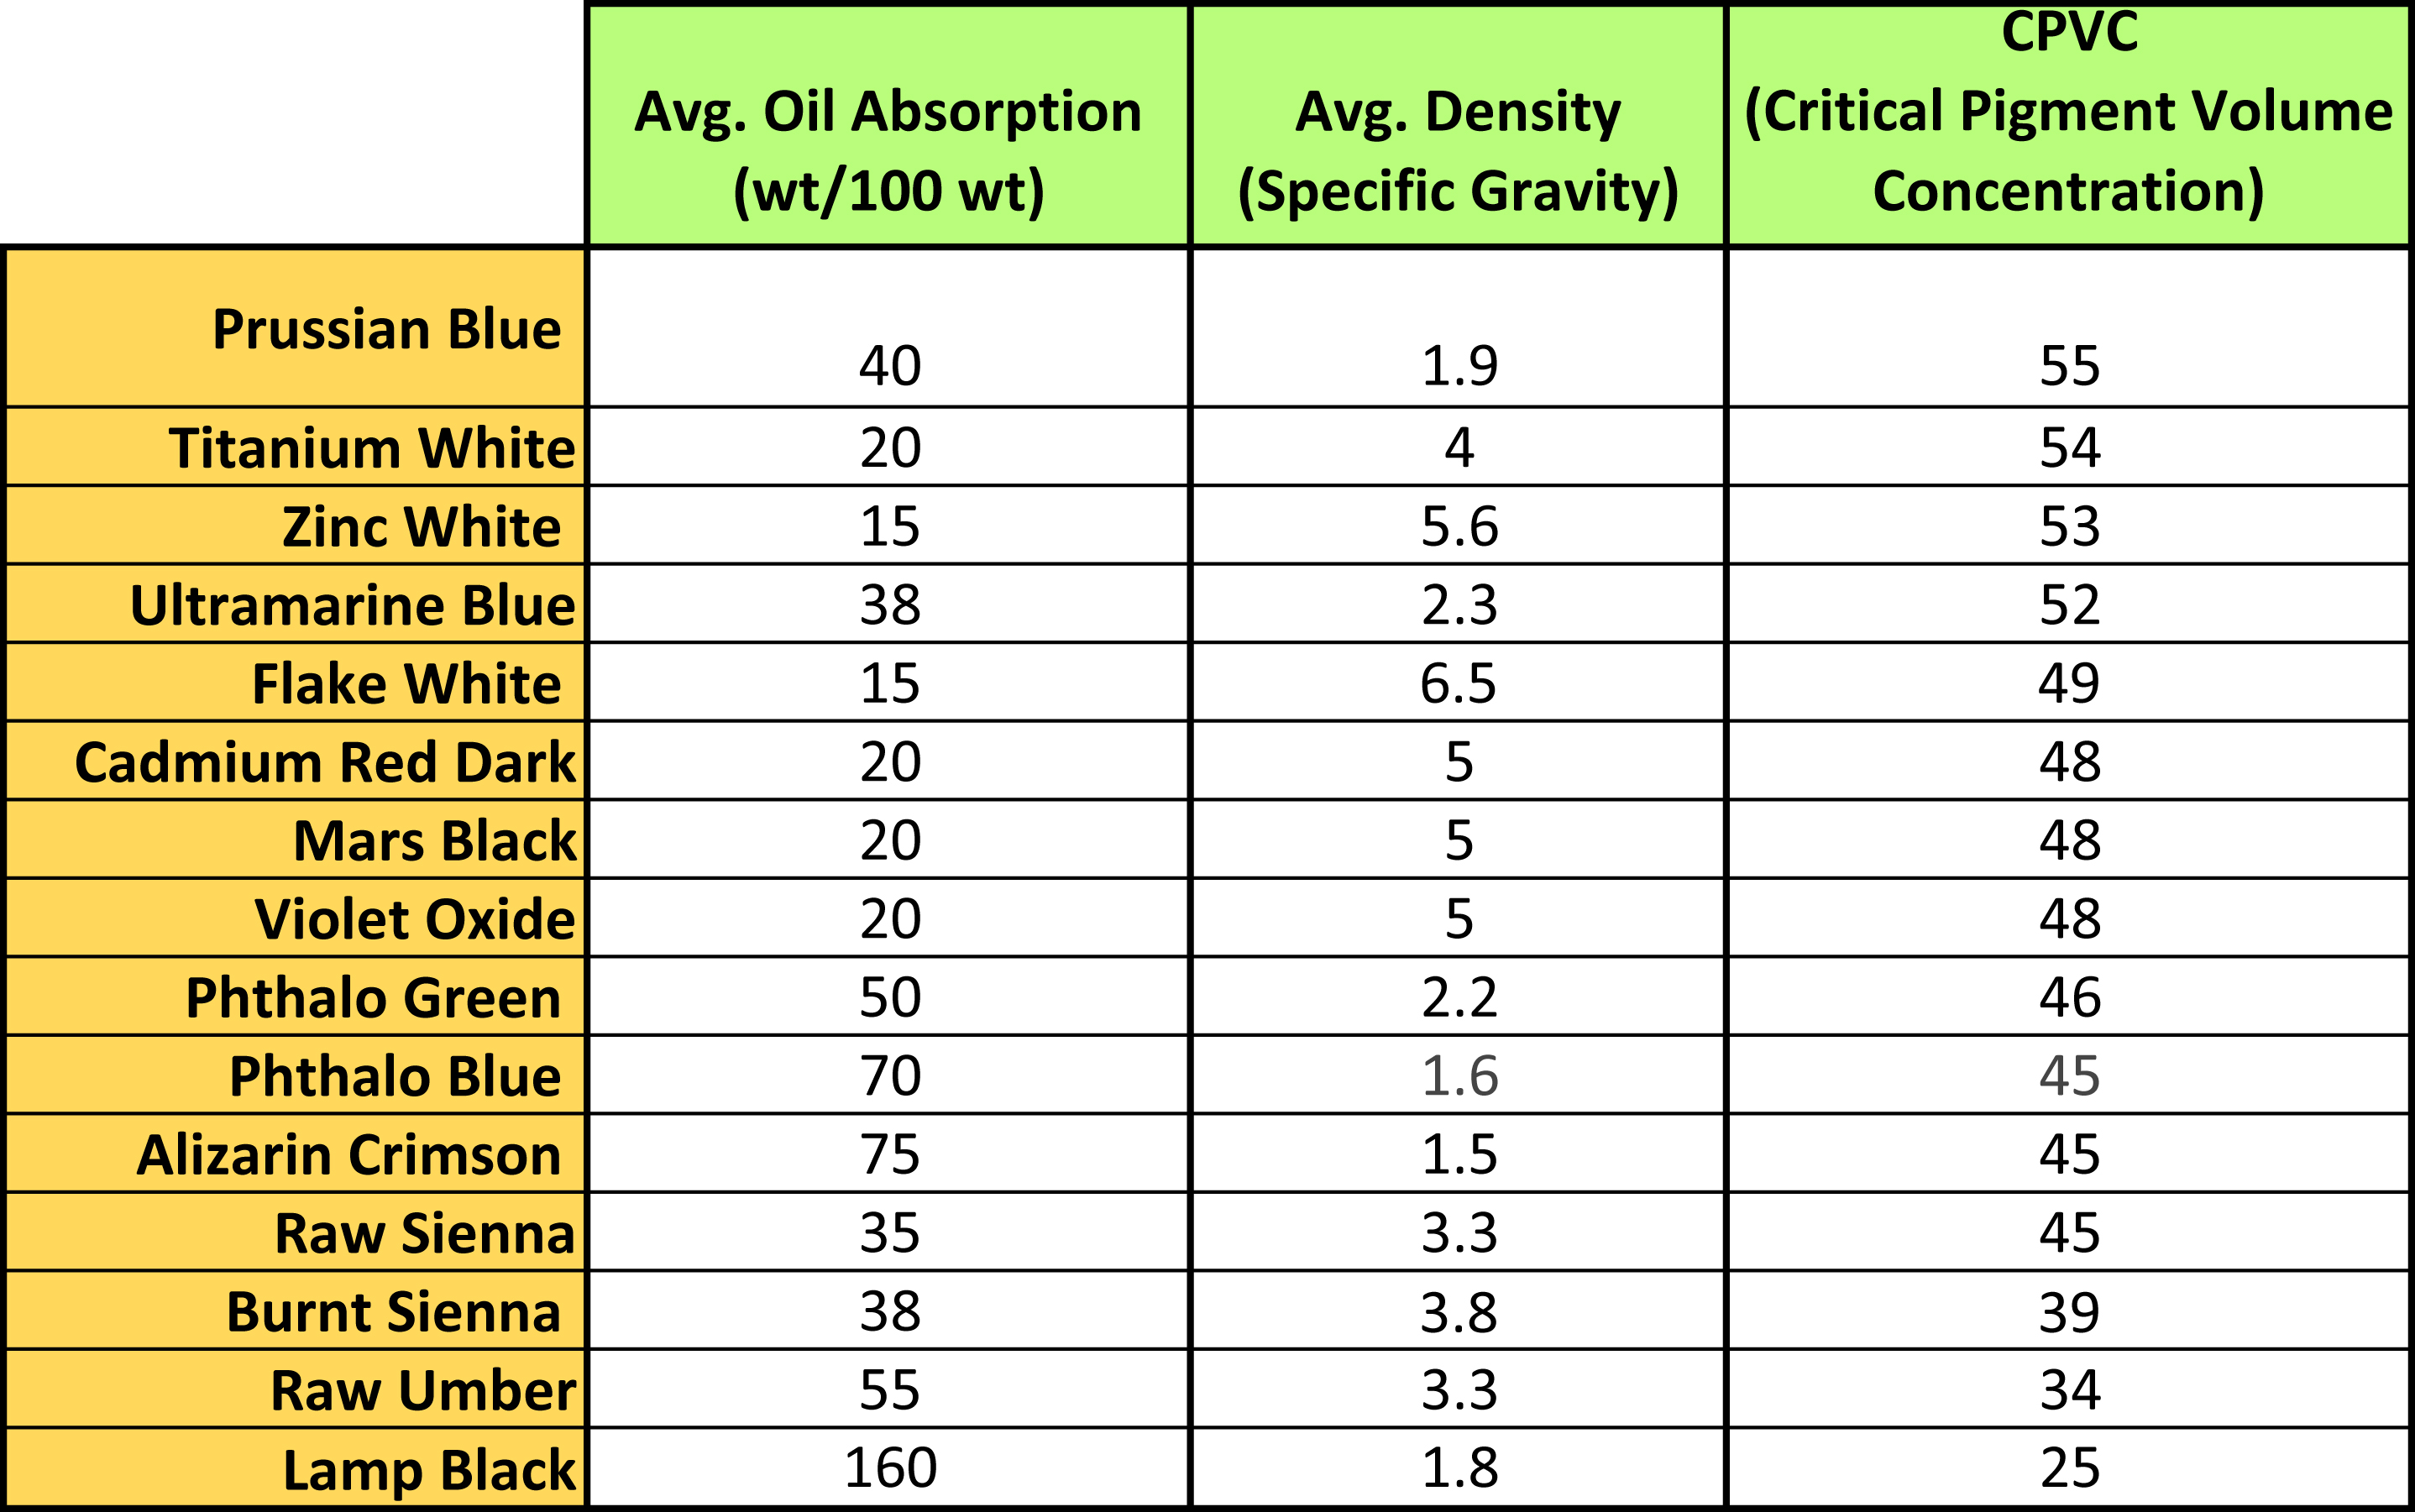 A Table Listing The Average Oil Absorption, Density, And Cpvc For A  Selection Of